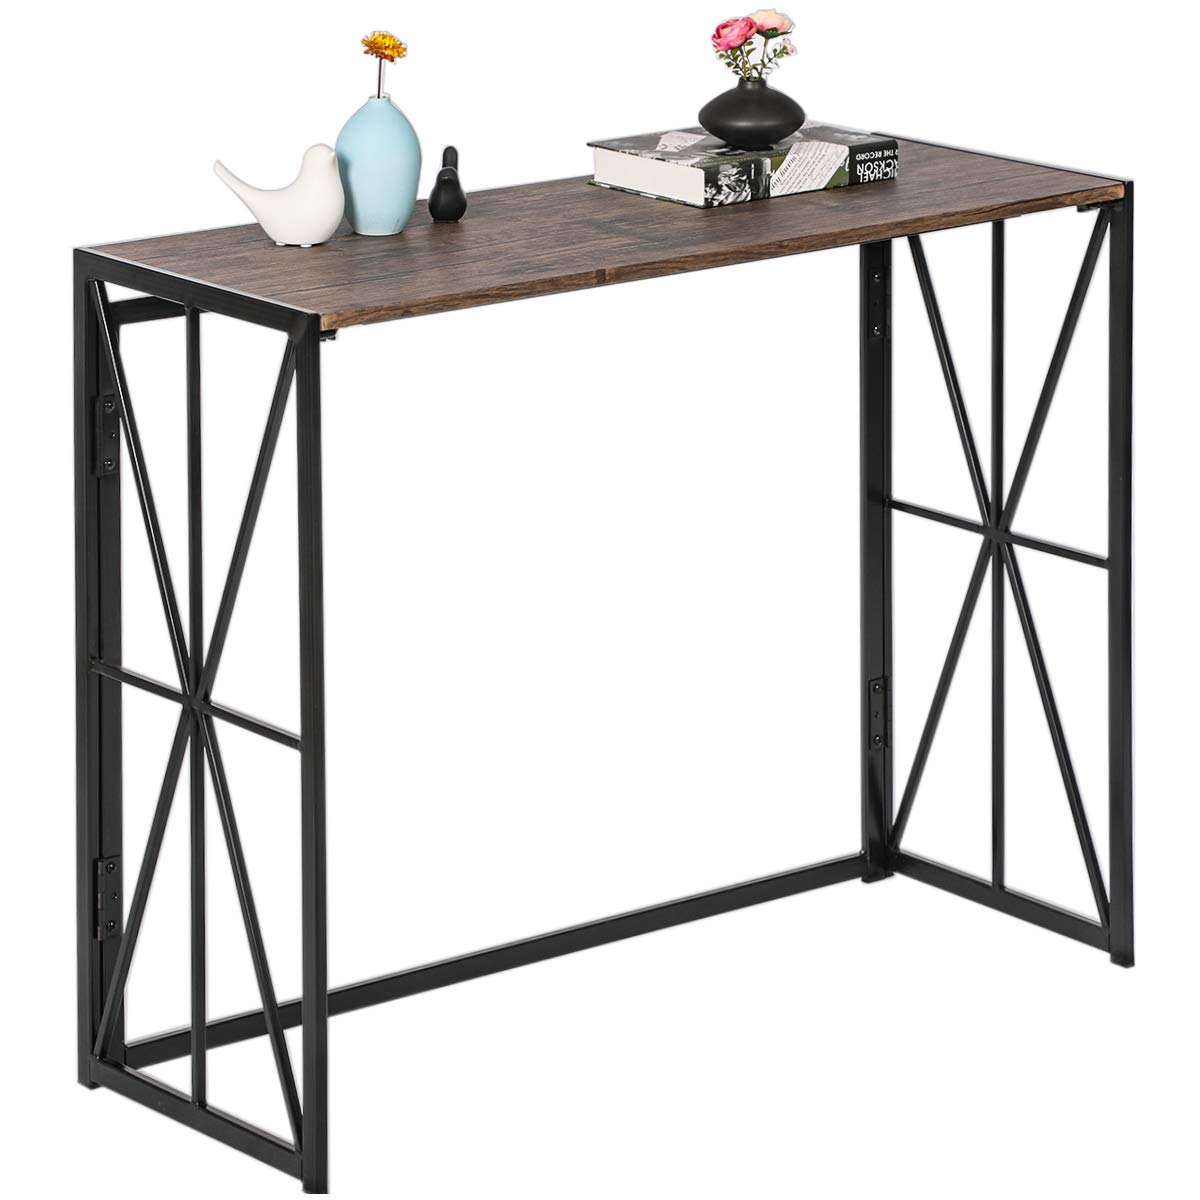 Awe Inspiring Folding Console Table No Assembly Tall Sofa Entryway Table 8 Seconds Finish Installation Industrial Hallway Wall Table With Sturdy Metal X Design Machost Co Dining Chair Design Ideas Machostcouk